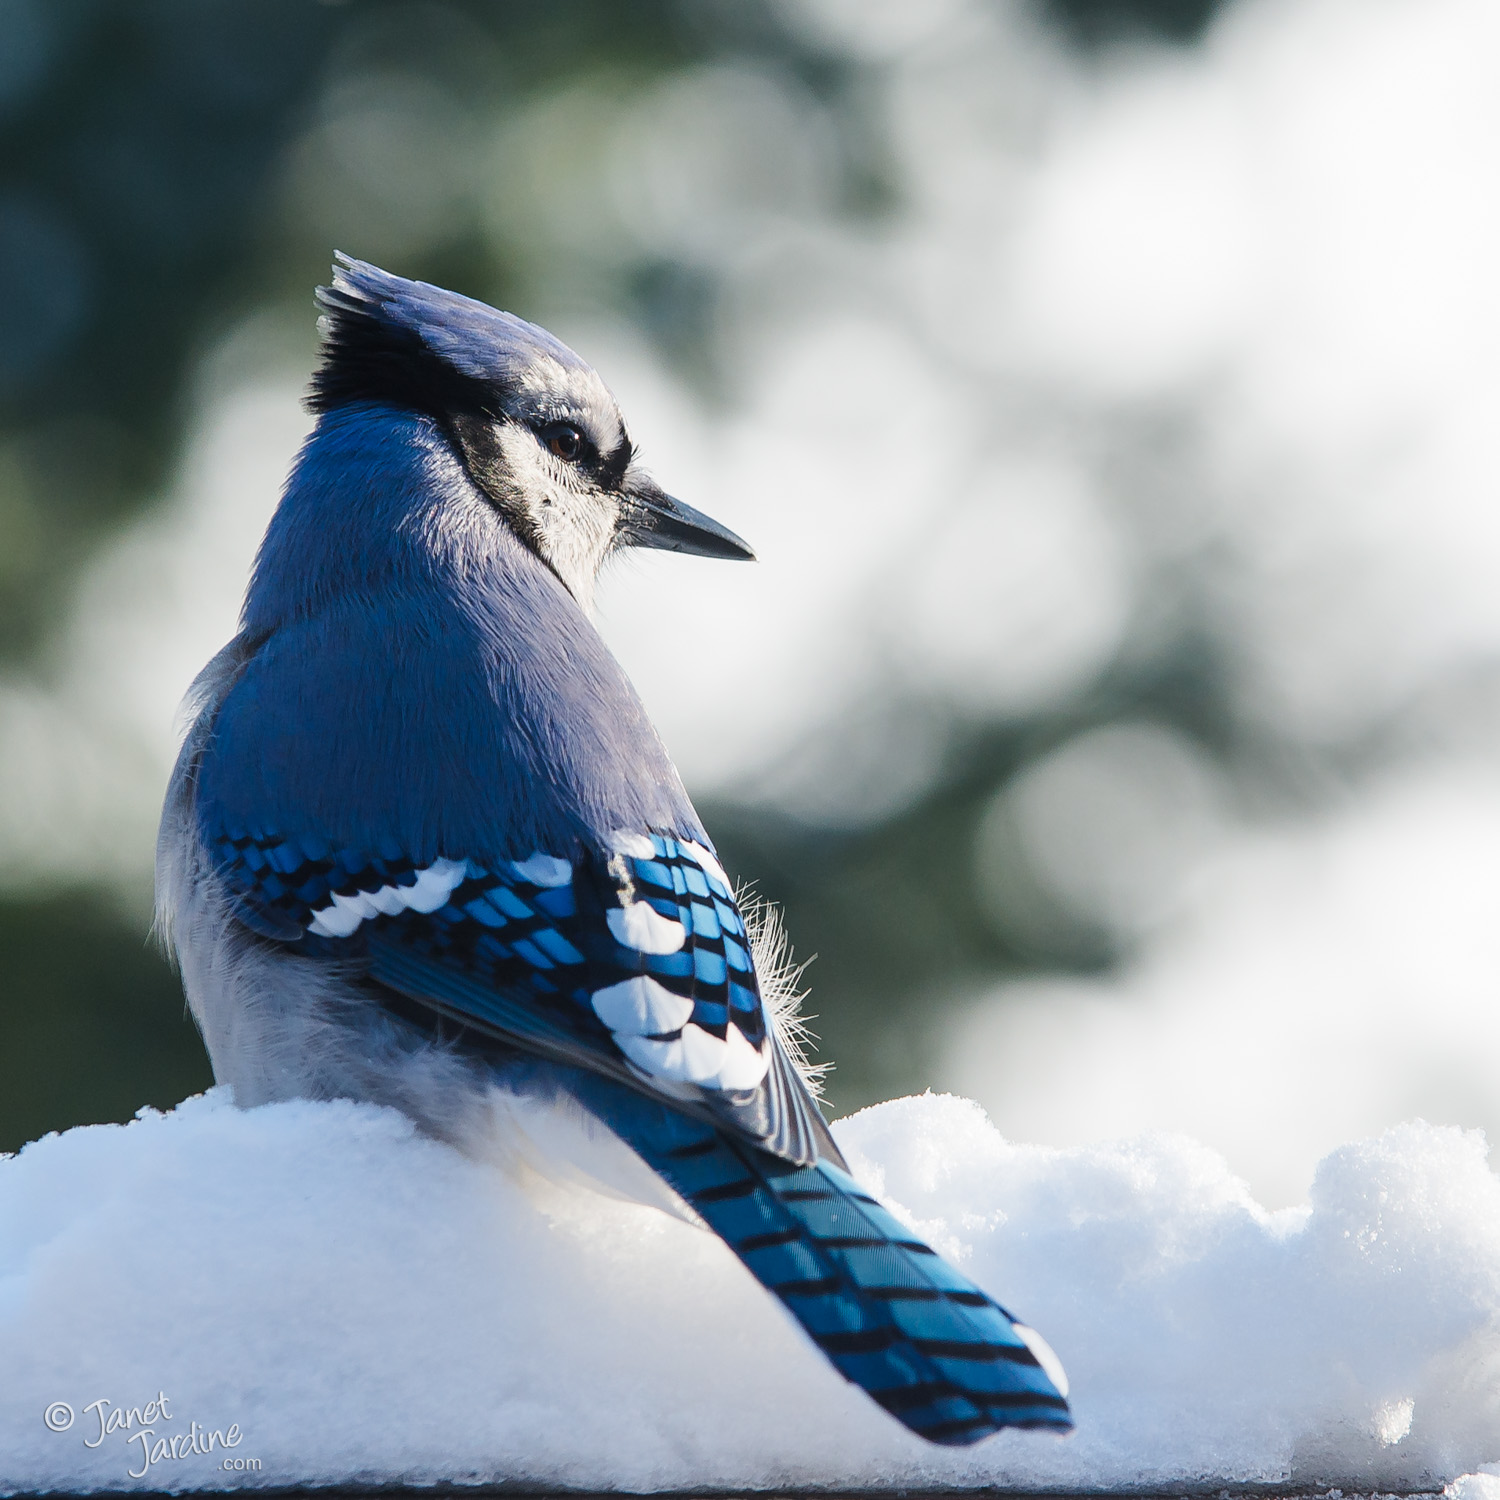 Winter-Blue-Jay_Photo_copyright_Janet_Jardine_SquareSpace.jpg